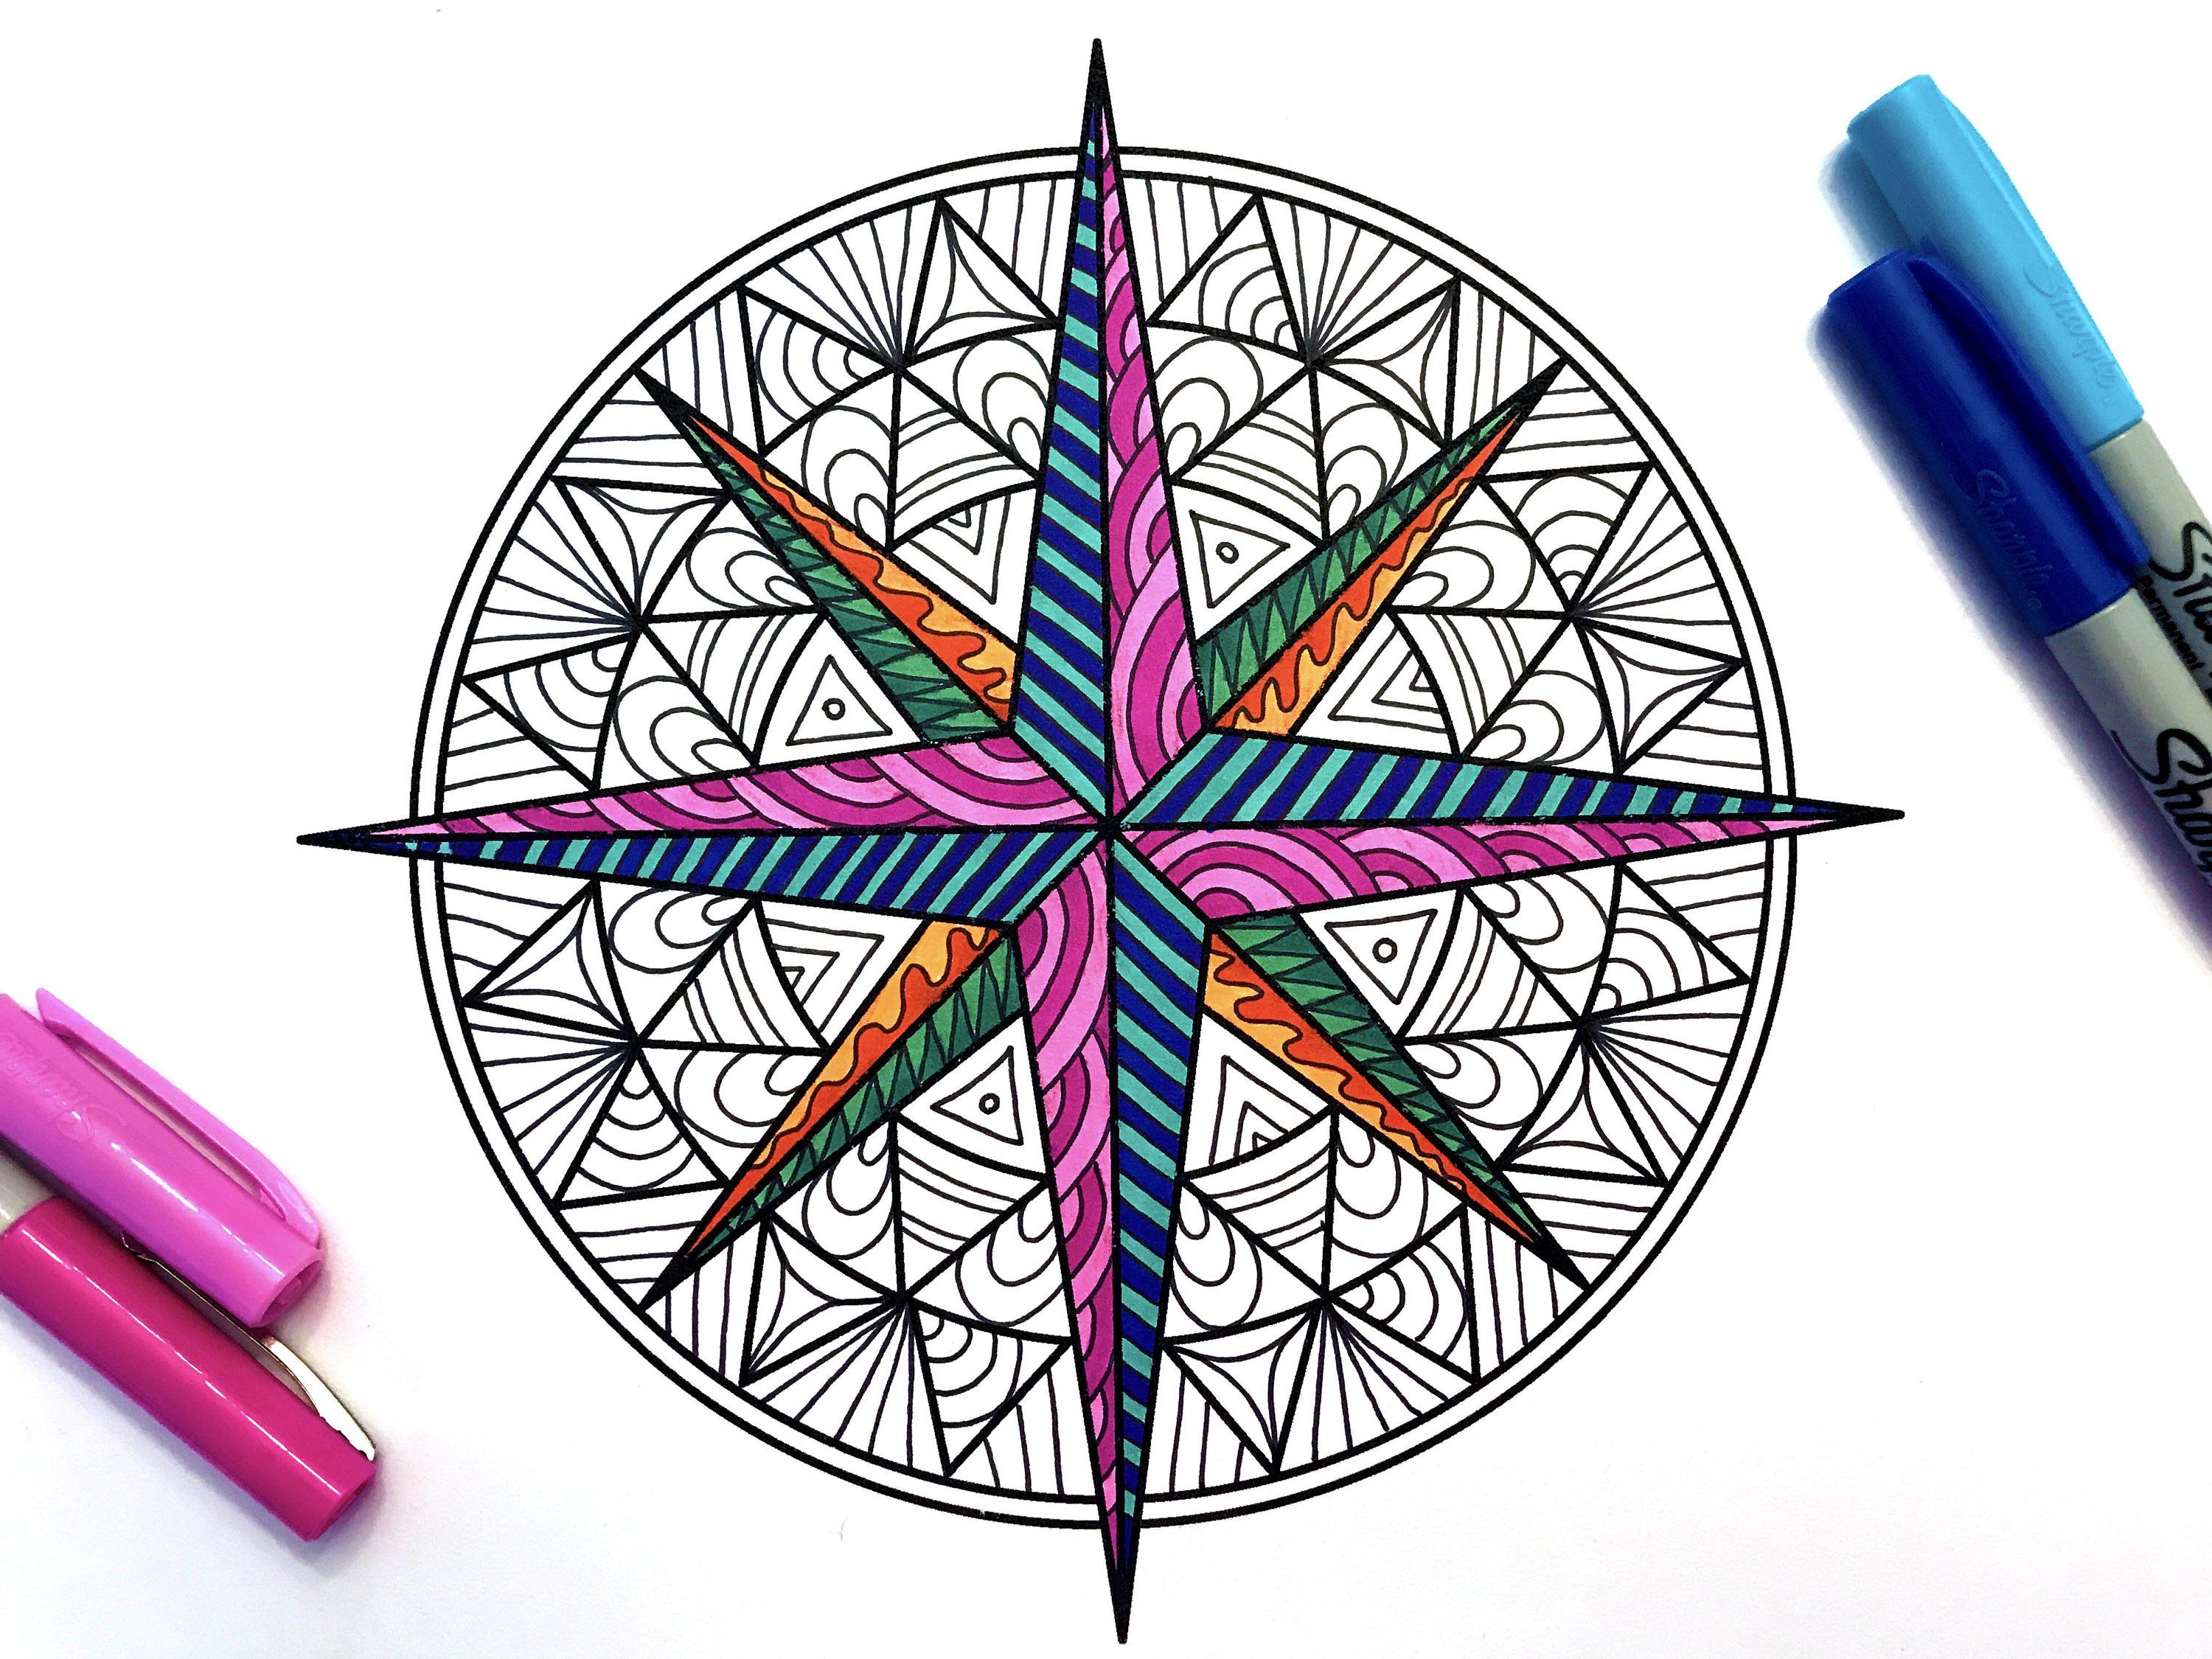 Compass Rose - PDF Zentangle Coloring Page | Rose coloring pages, Compass rose, Zentangle